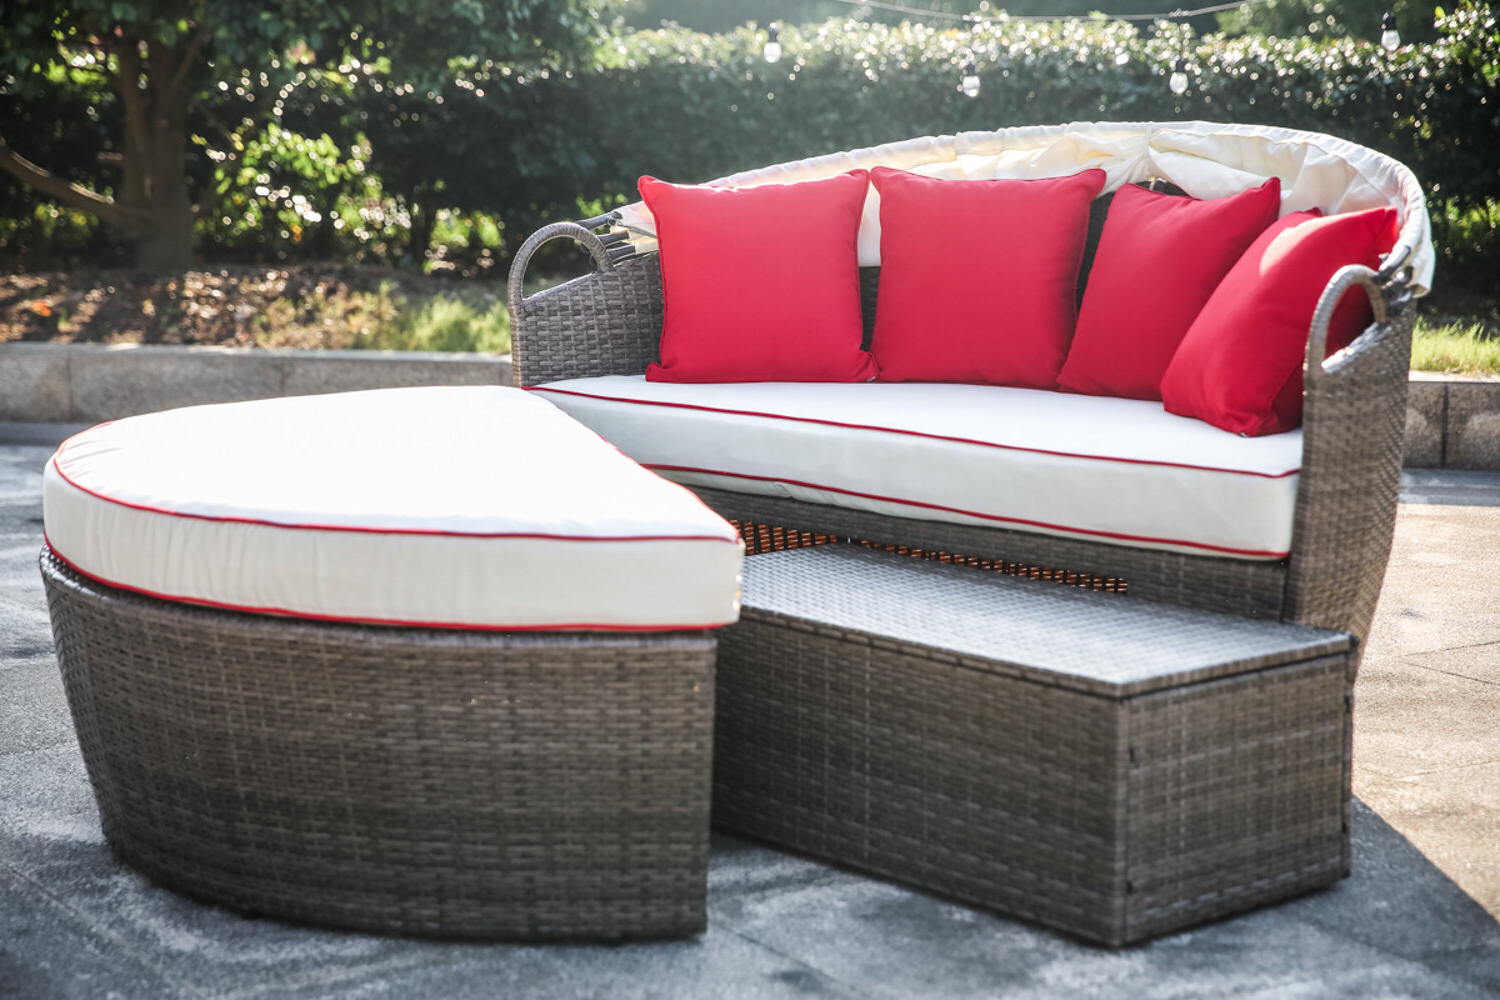 Favorite Fansler Patio Daybed With Cushions Pertaining To Carrasco Patio Daybeds With Cushions (View 12 of 20)